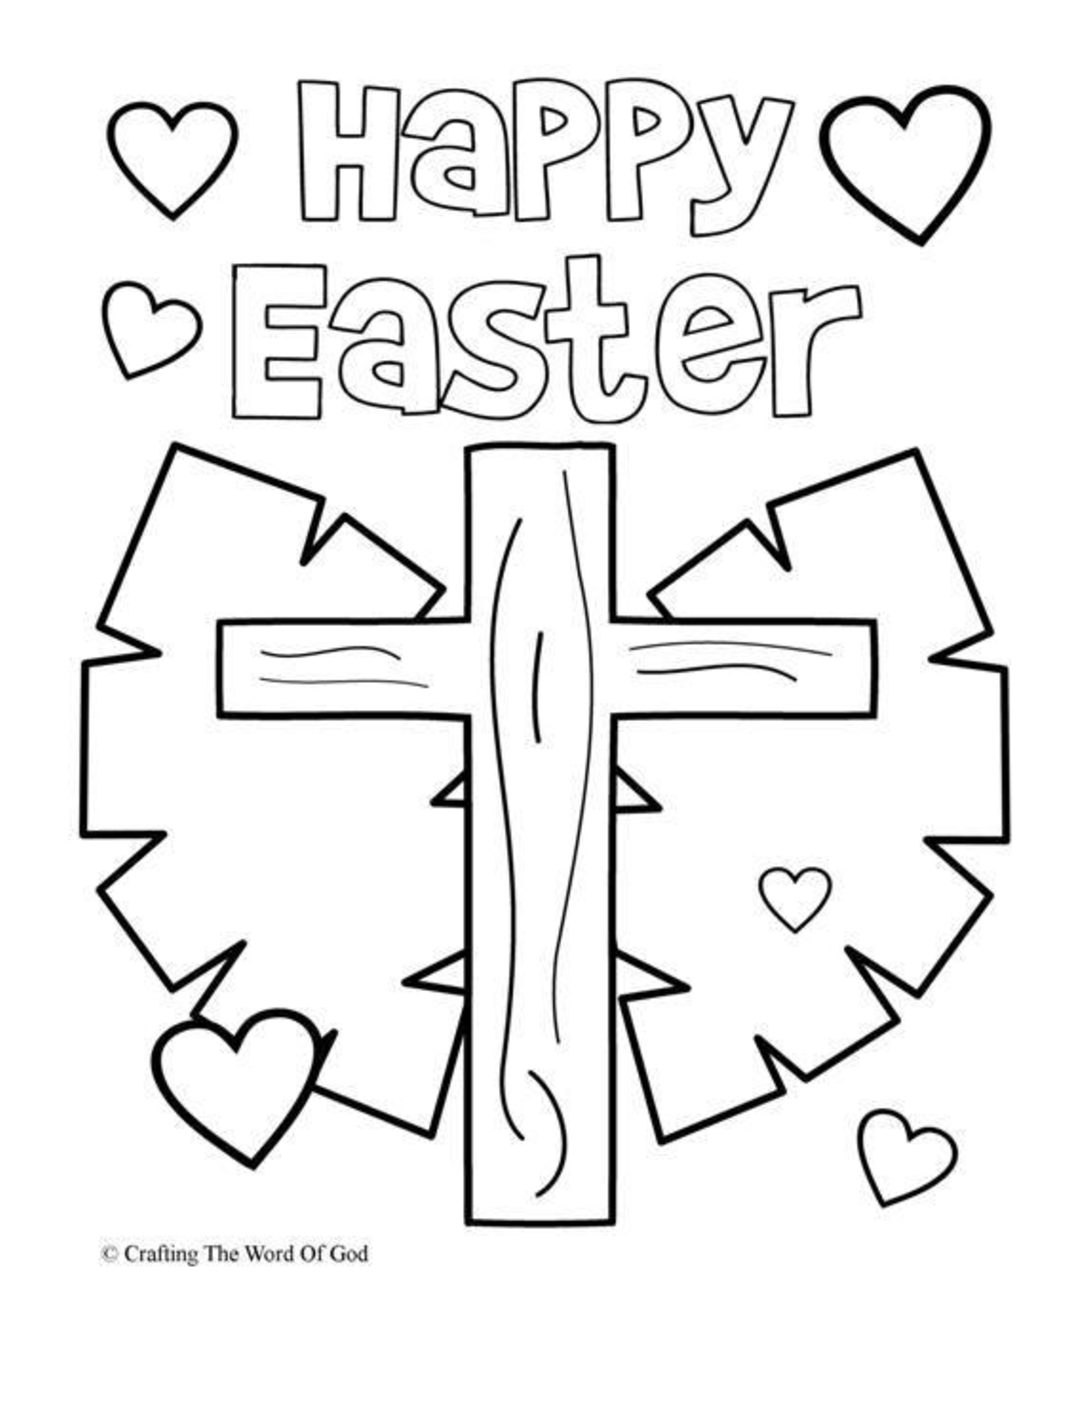 April Week 2 - Easter Coloring Pages